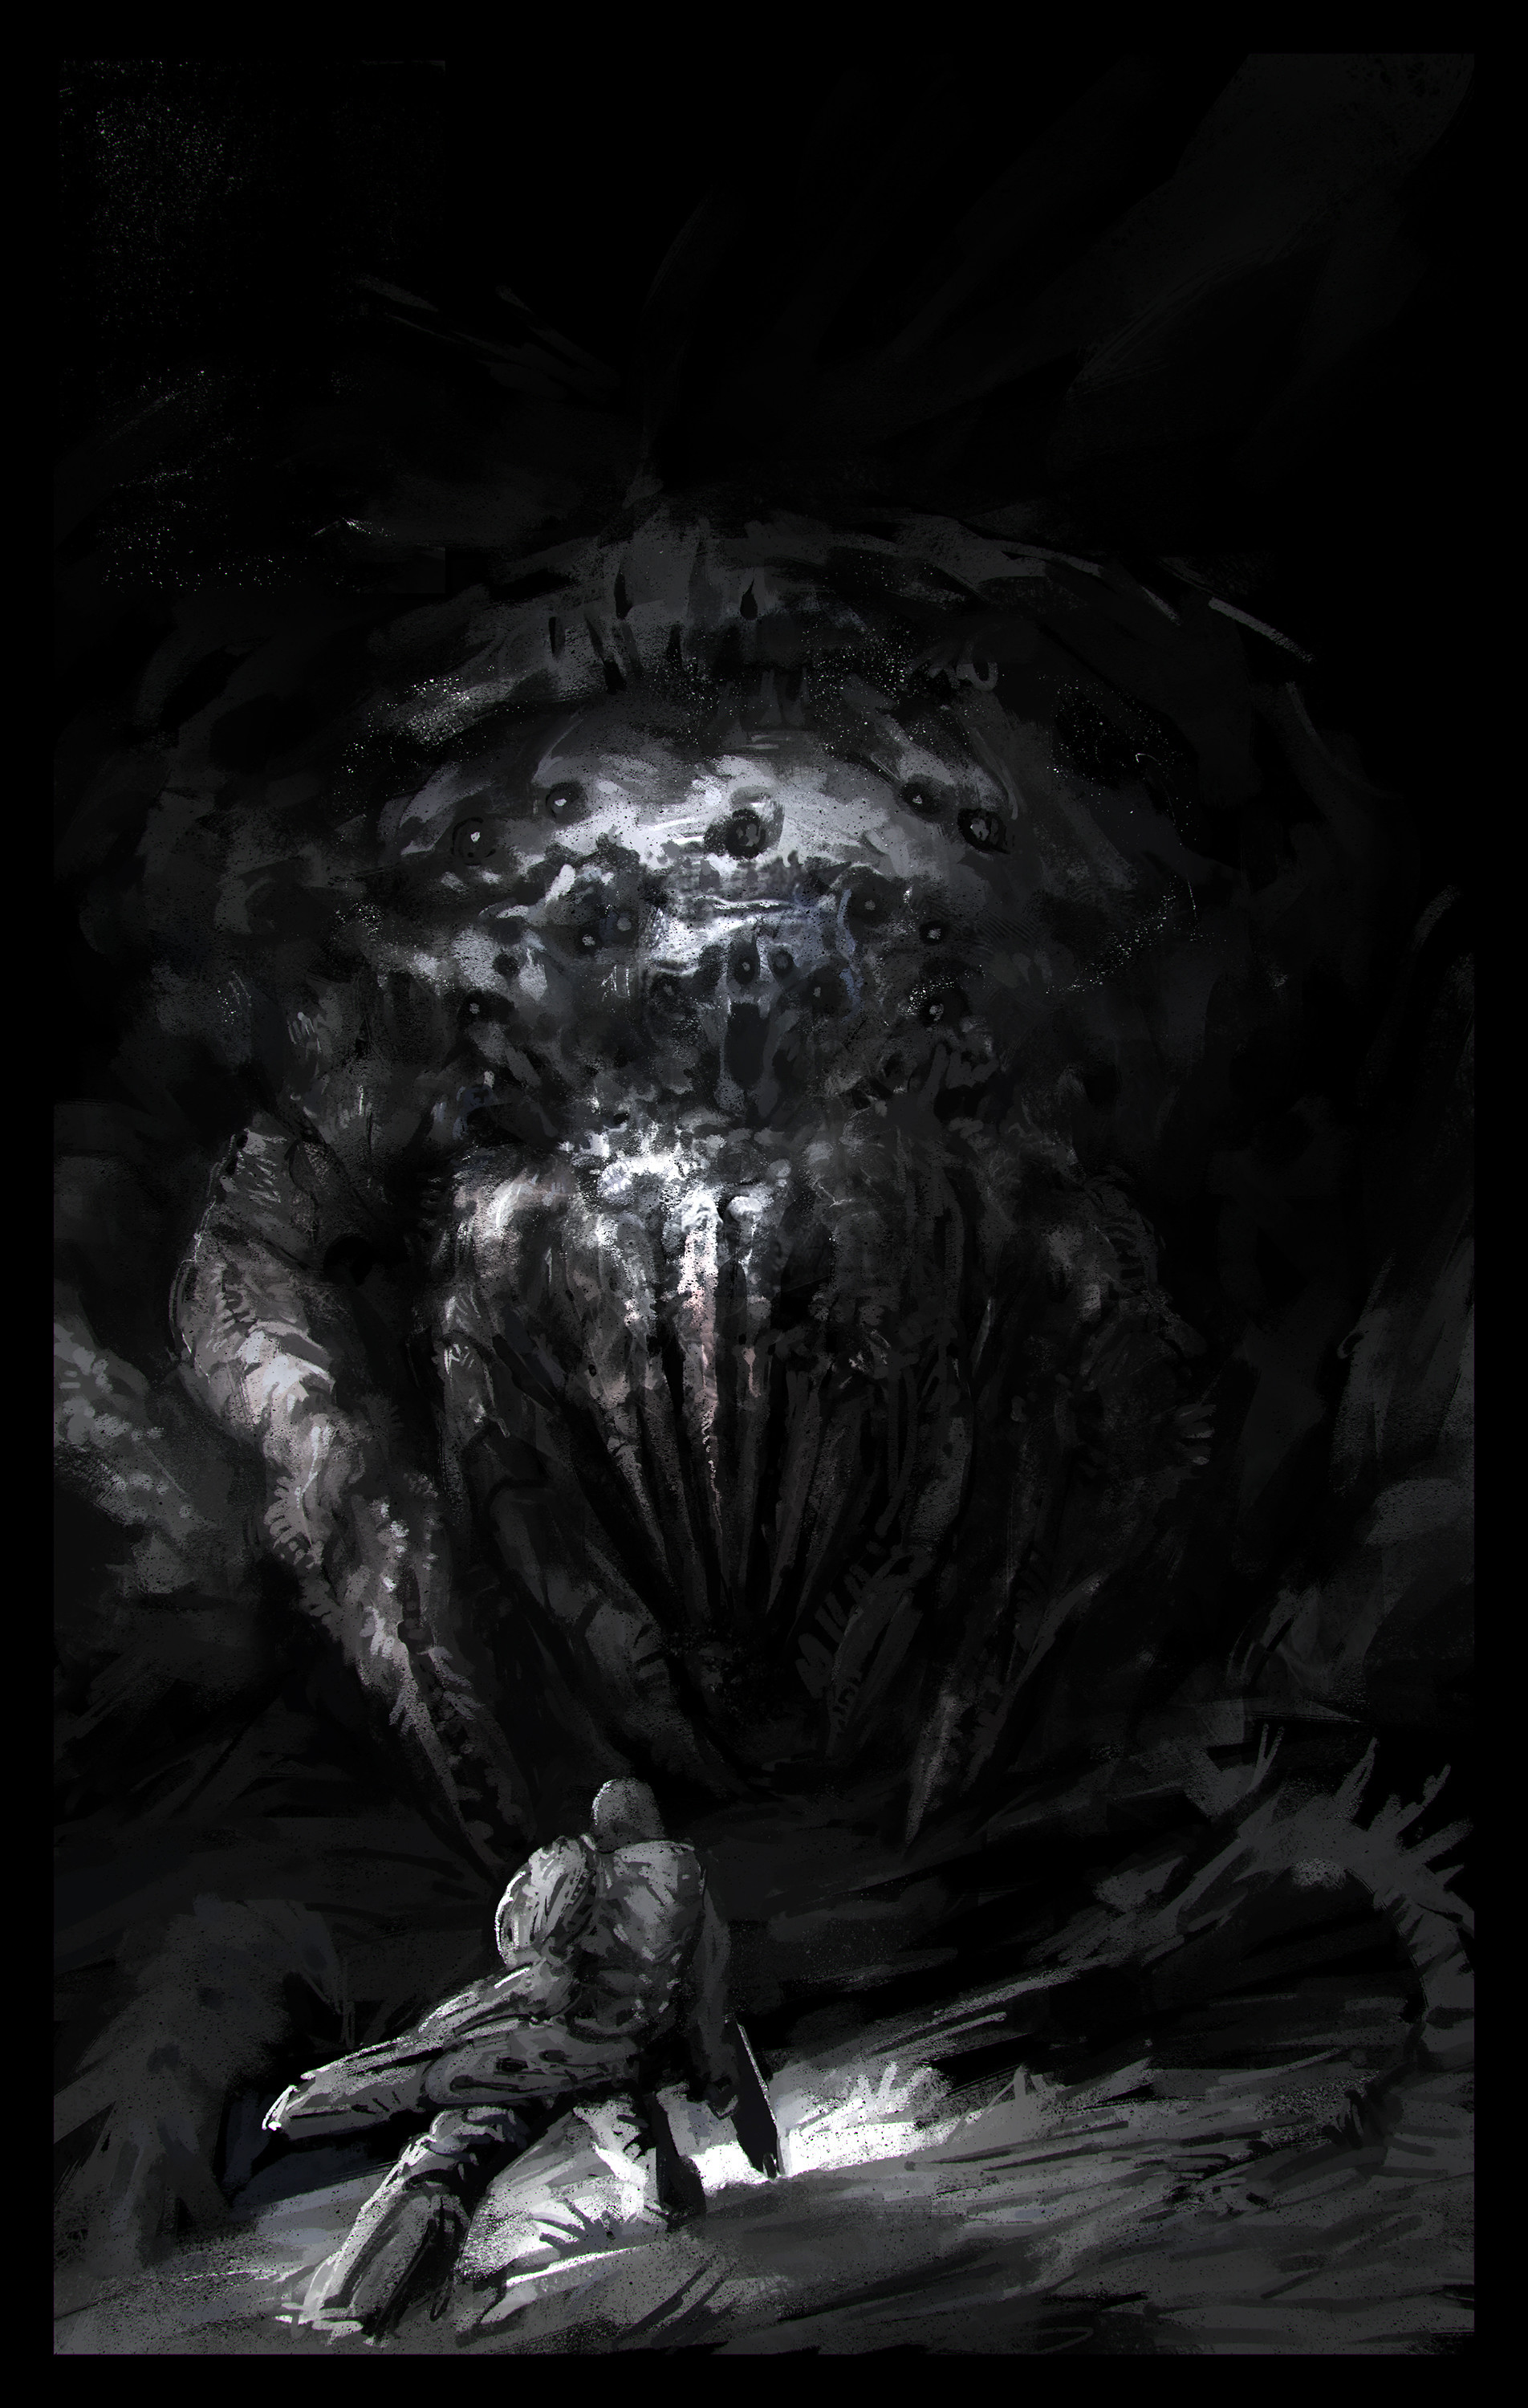 Sergey musin night land cave creature sketch4